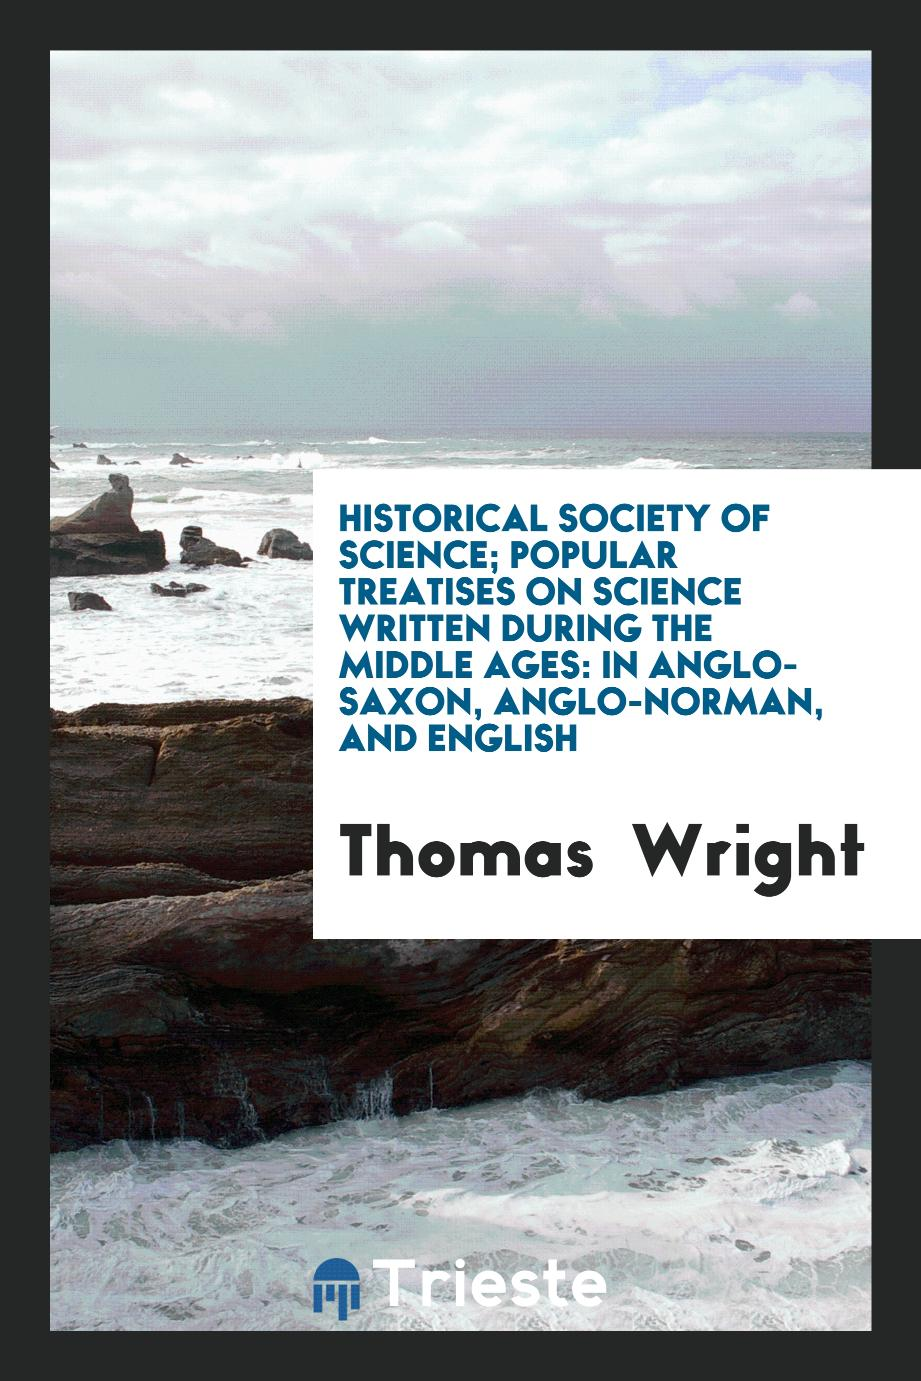 Historical Society of Science; Popular Treatises on Science Written During the Middle Ages: In Anglo-Saxon, Anglo-Norman, and English